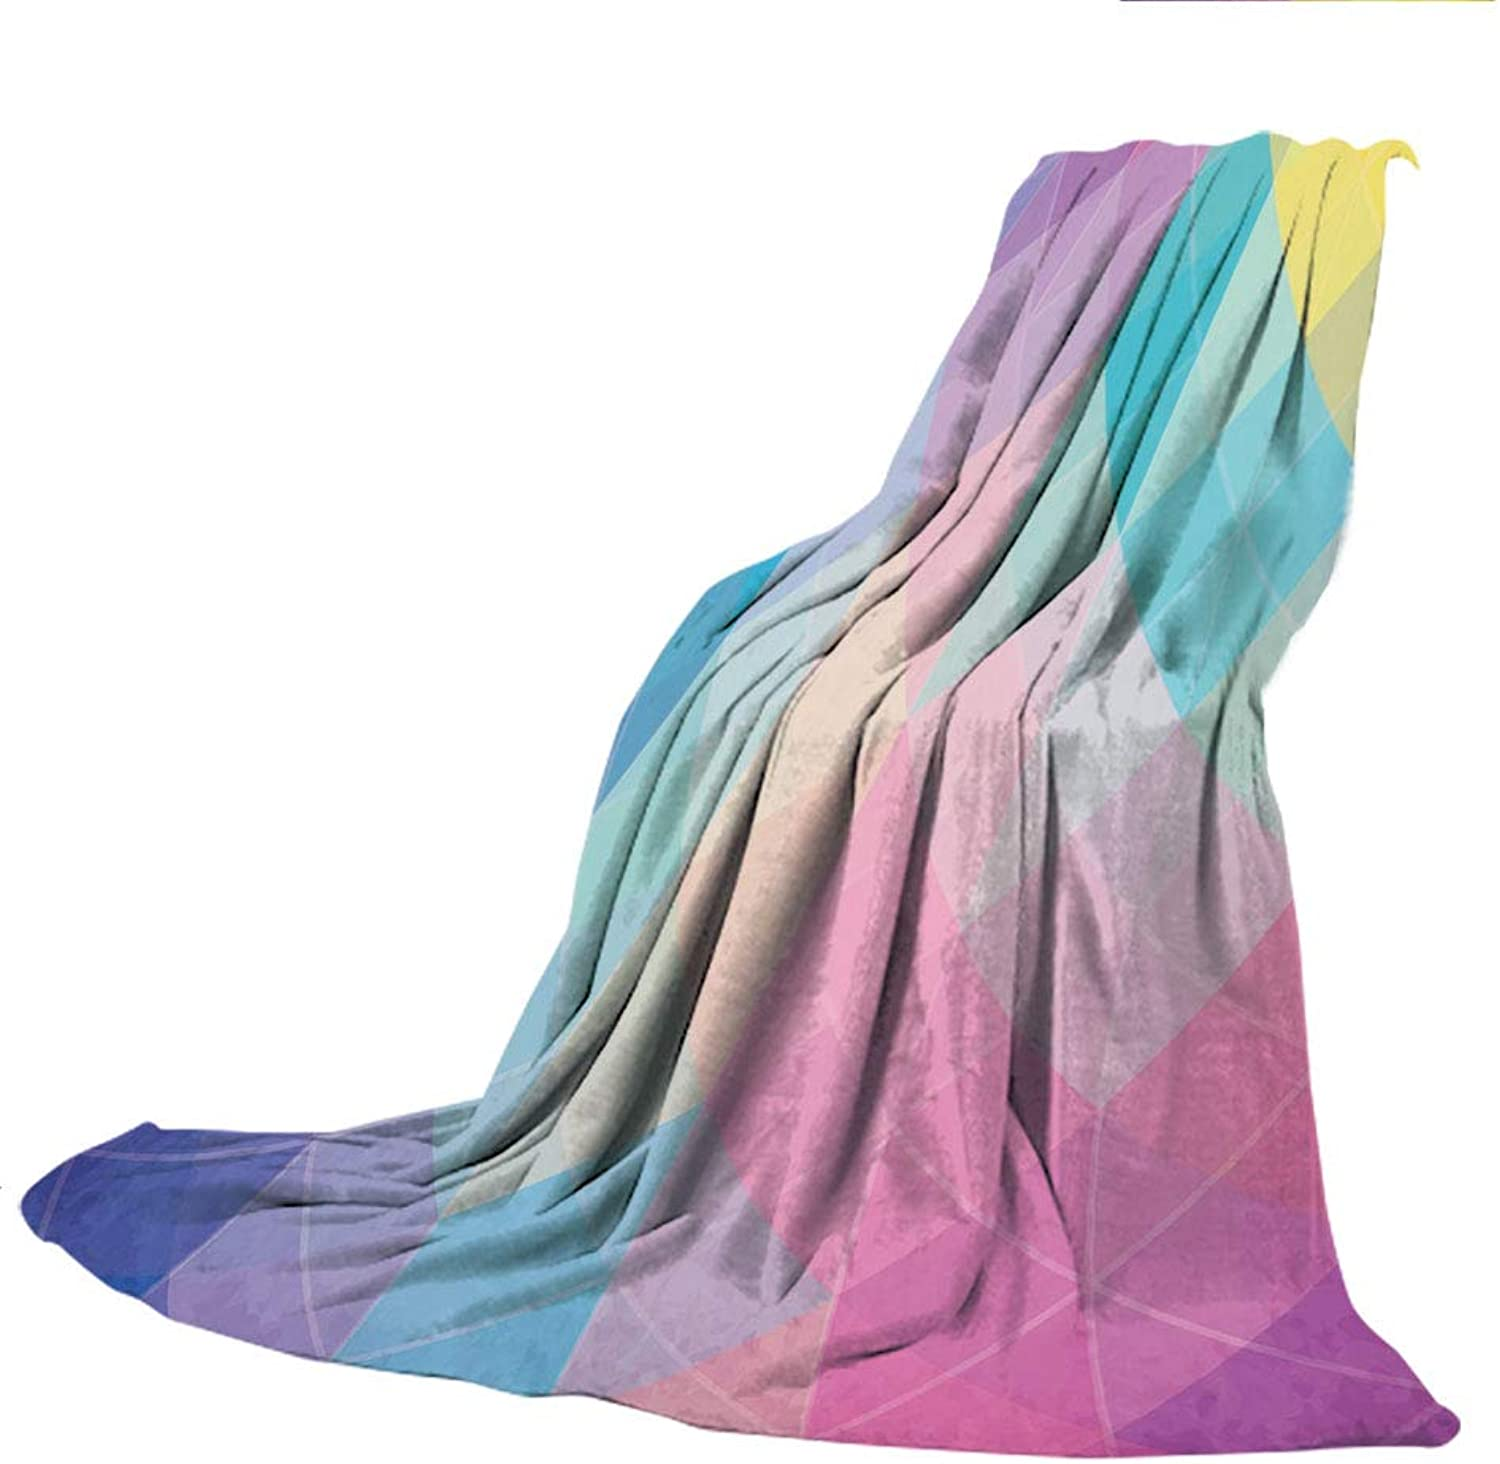 SCOCICI Blanket for Bed Couch Chair Fall Winter Spring Living Room,Indie,Abstract Triangles Classical Diamond Line Pattern in Dreamy colors Artistic Modern Decorative,Multicolor,59.06  W x 86.62  H